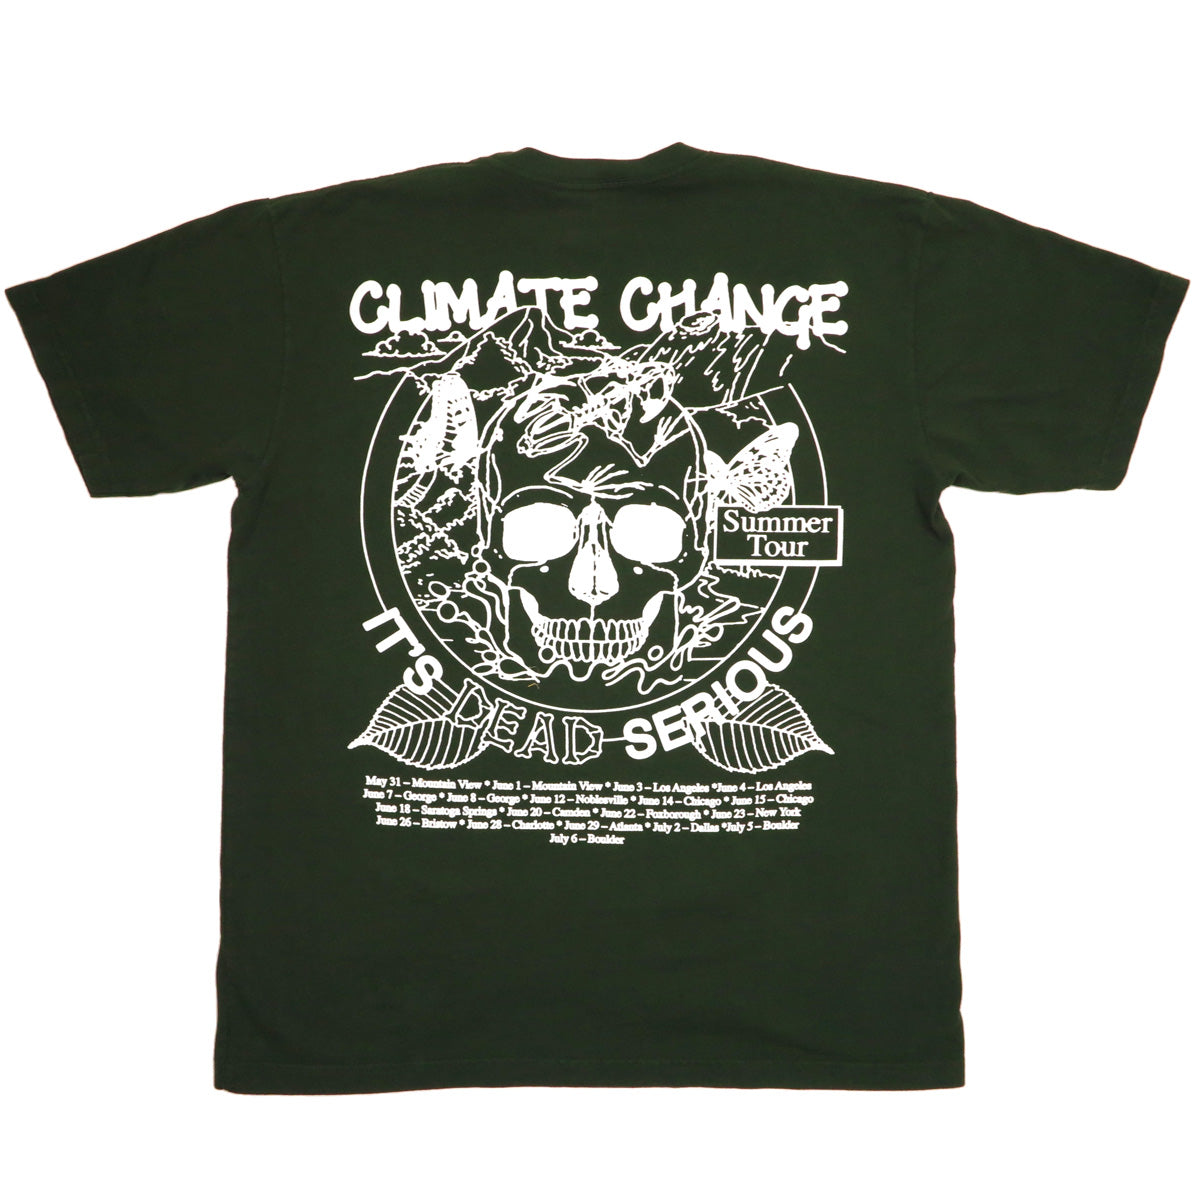 74d7c128 ... Climate Change is Dead Serious (greener pastures) product shot